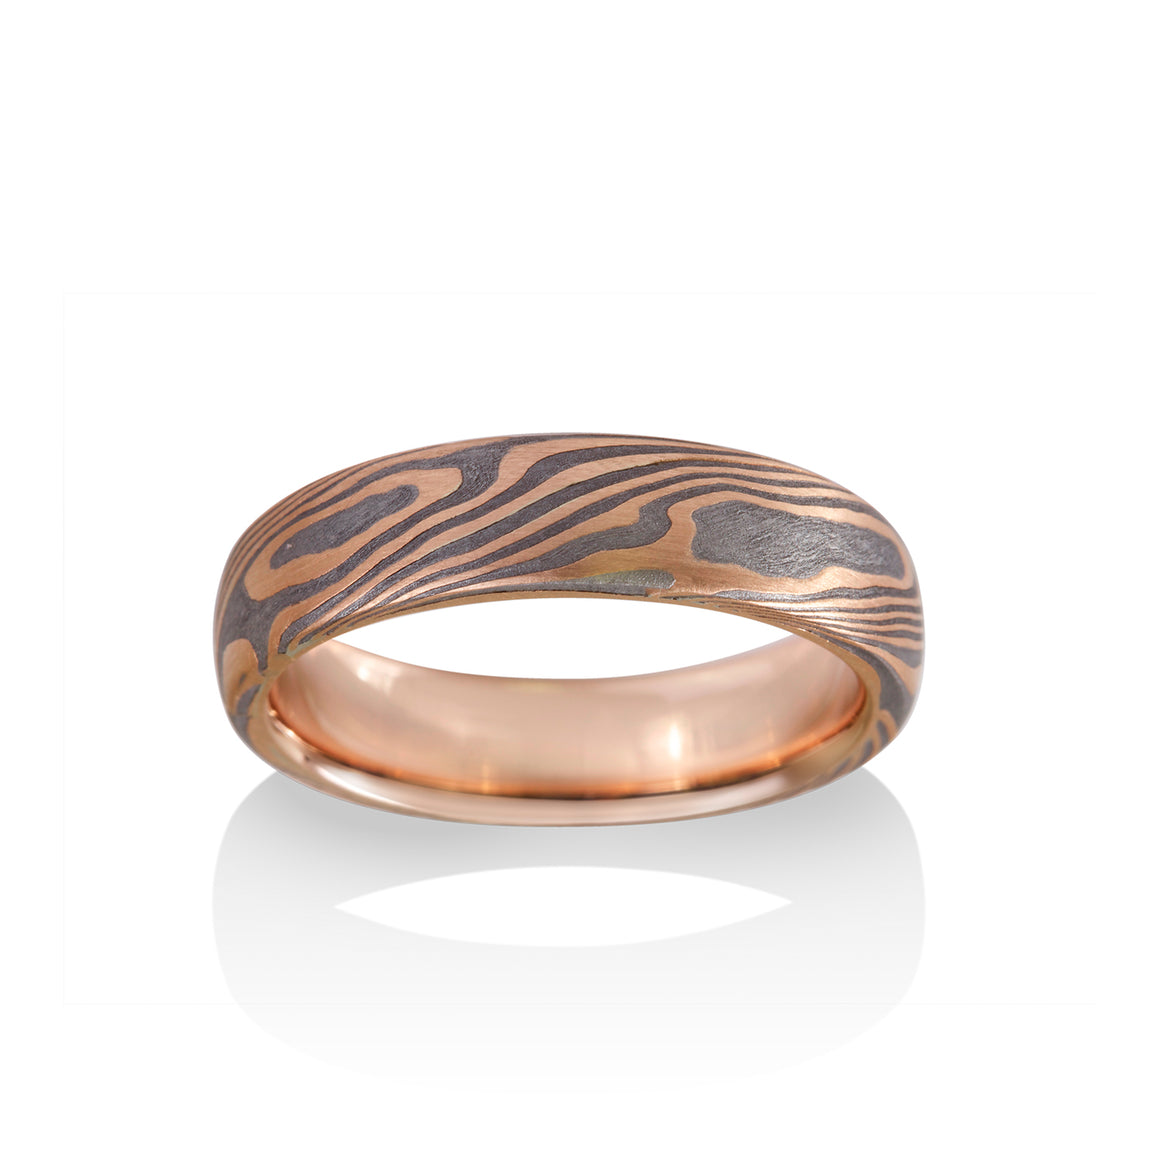 Chris Ploof Maple Mokume Ring in 14K Red Gold and Meteorite